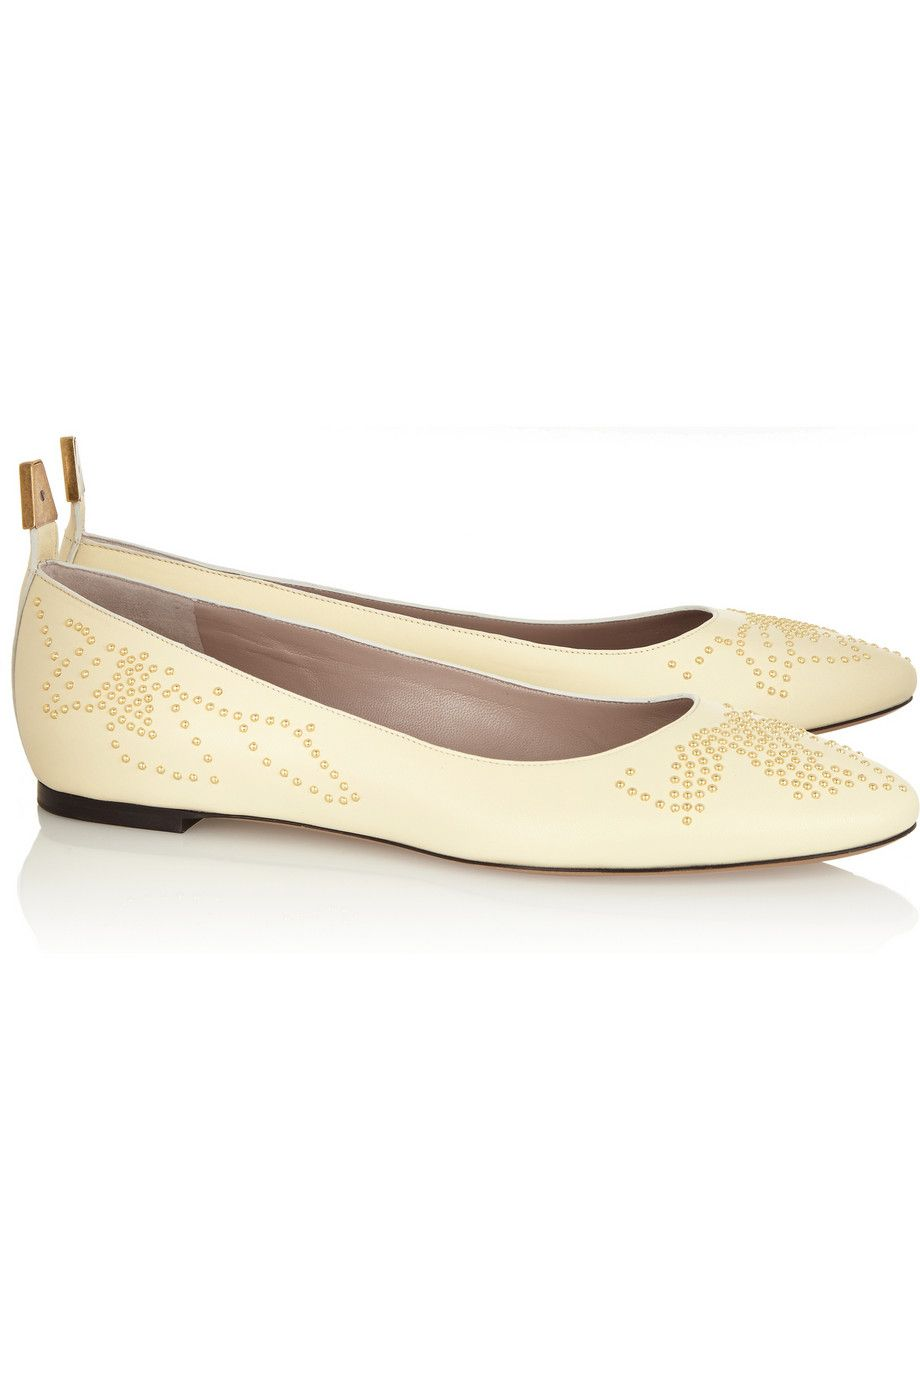 Chloé Studded Leather Ballet Flats Wa0kYtB39